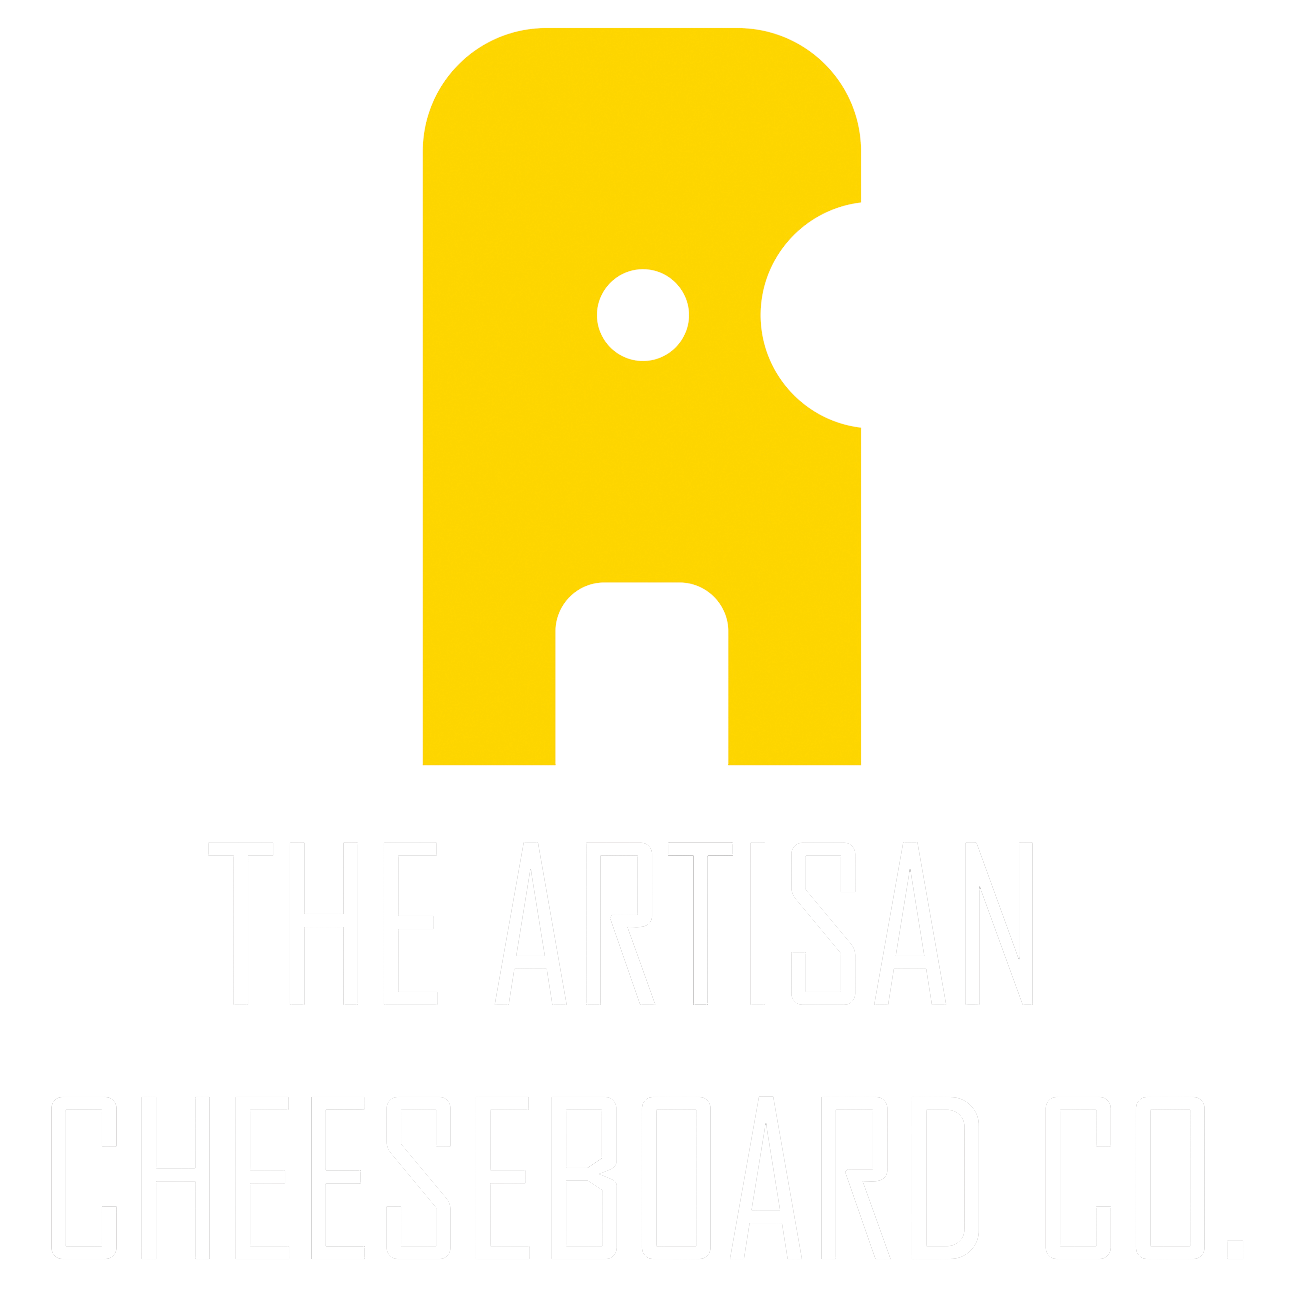 The Artisan Cheeseboard Co.